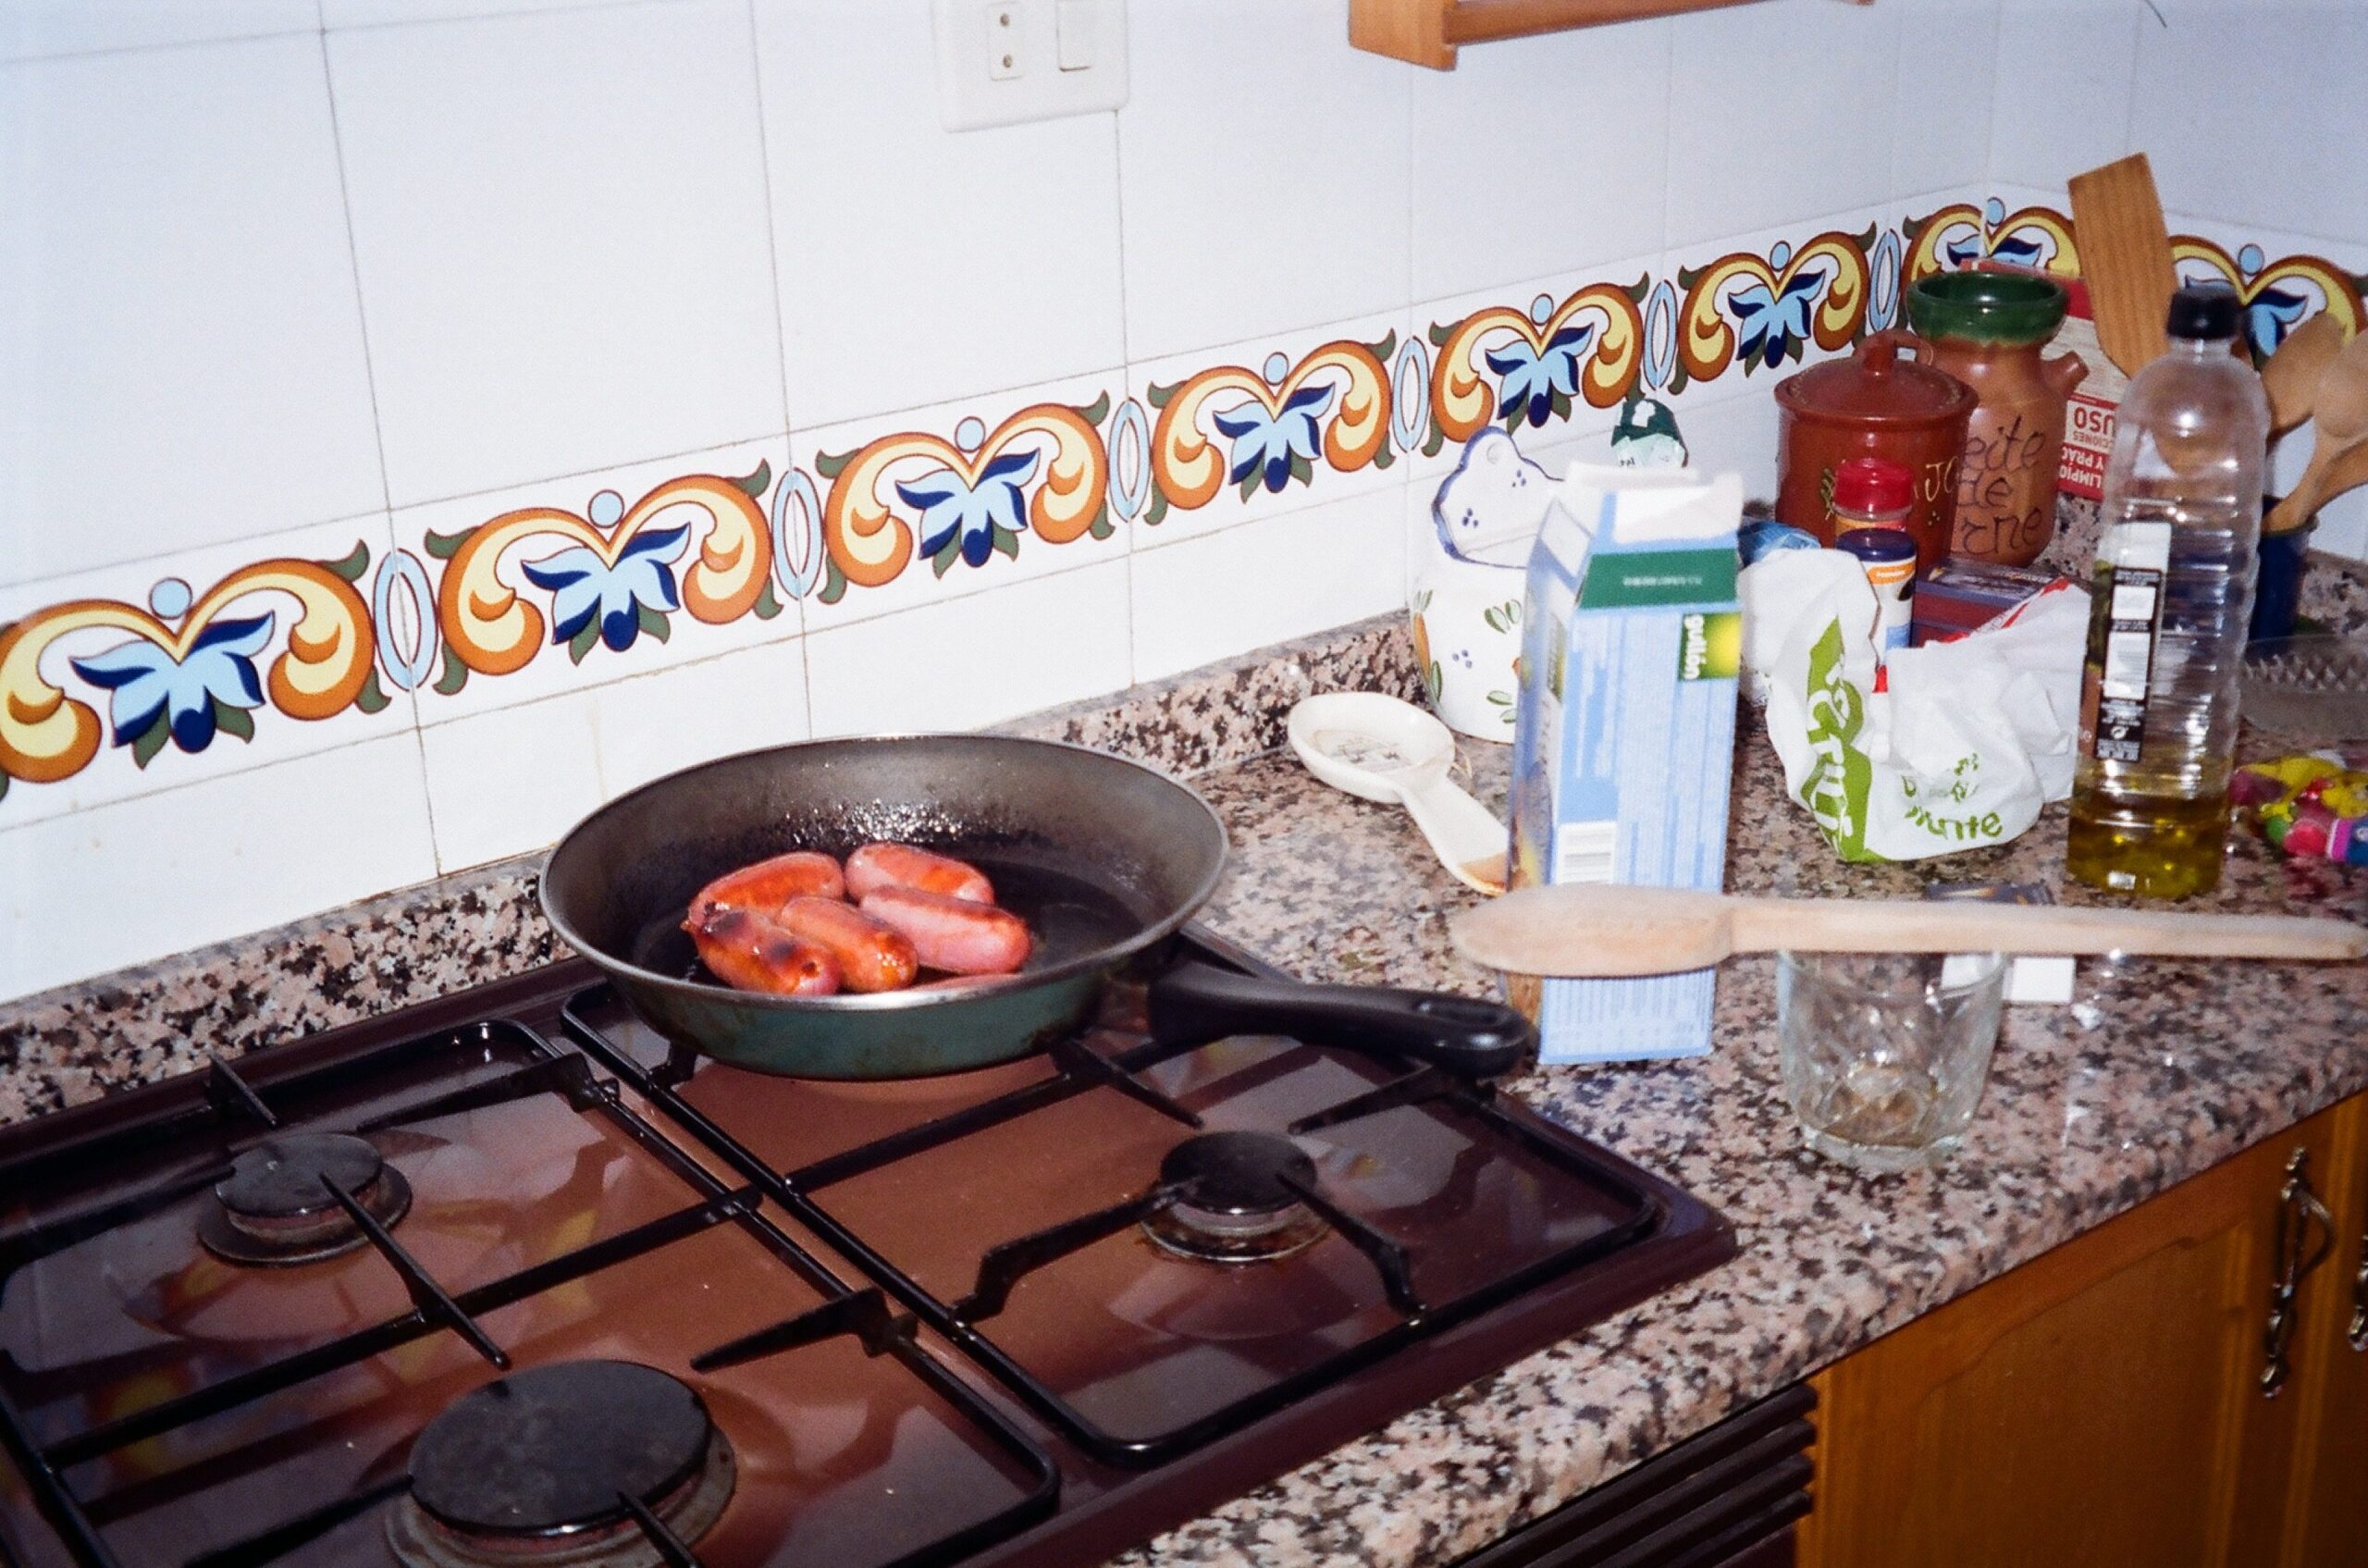 Chorizo sausages cook in a pan on an old gas stove.